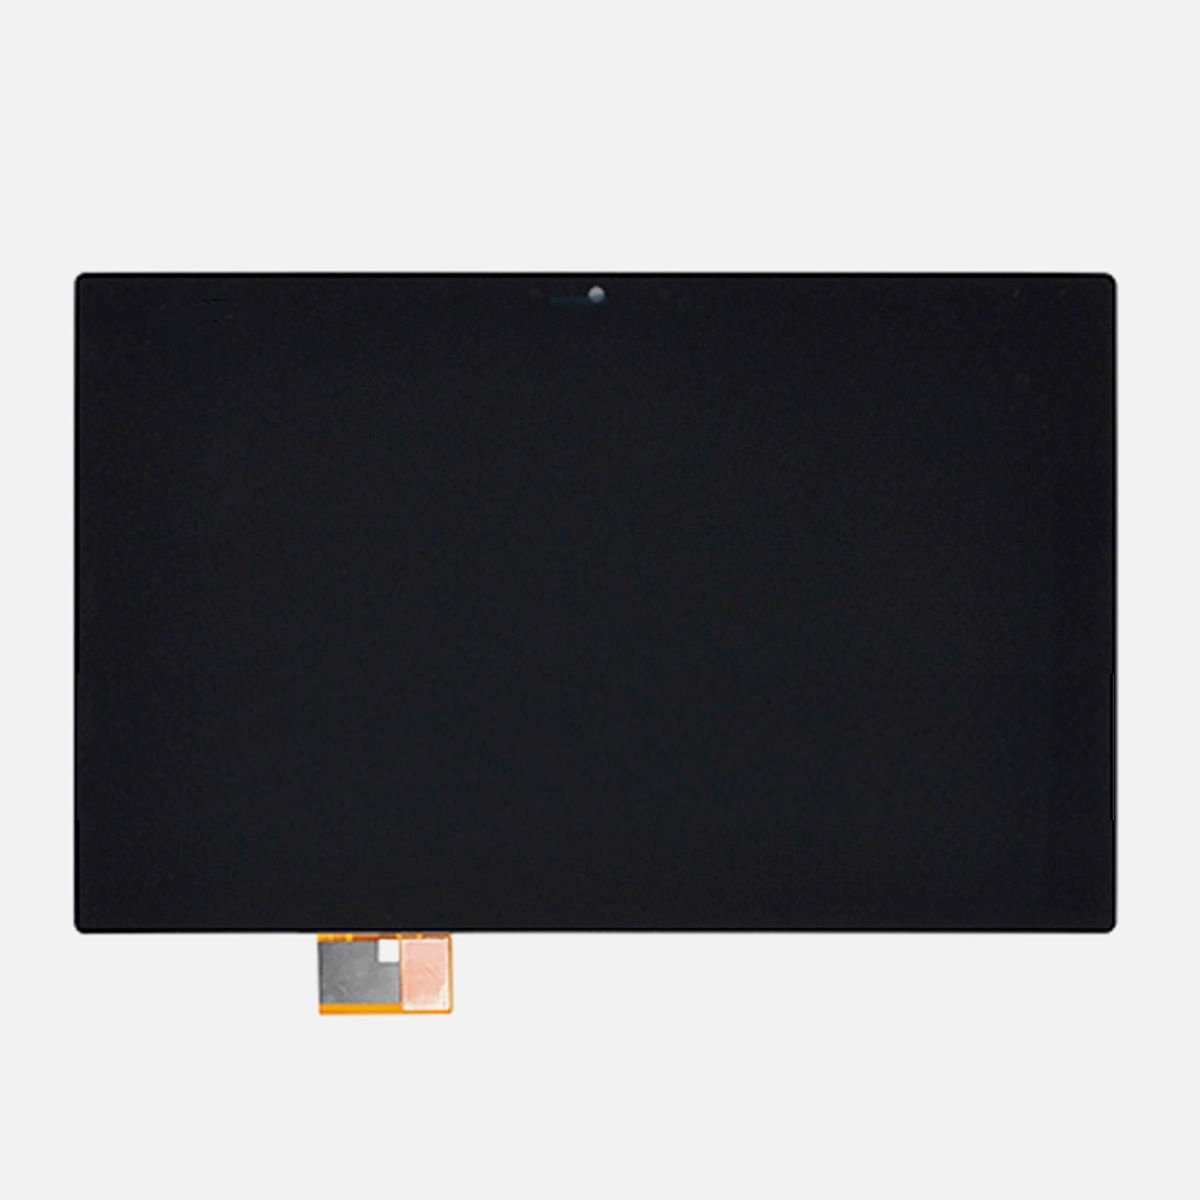 LCD Screen Display + Touch Screen Panel Digitizer Glass For Sony Xperia Tablet Z SGP311 SGP312 Replacement Part